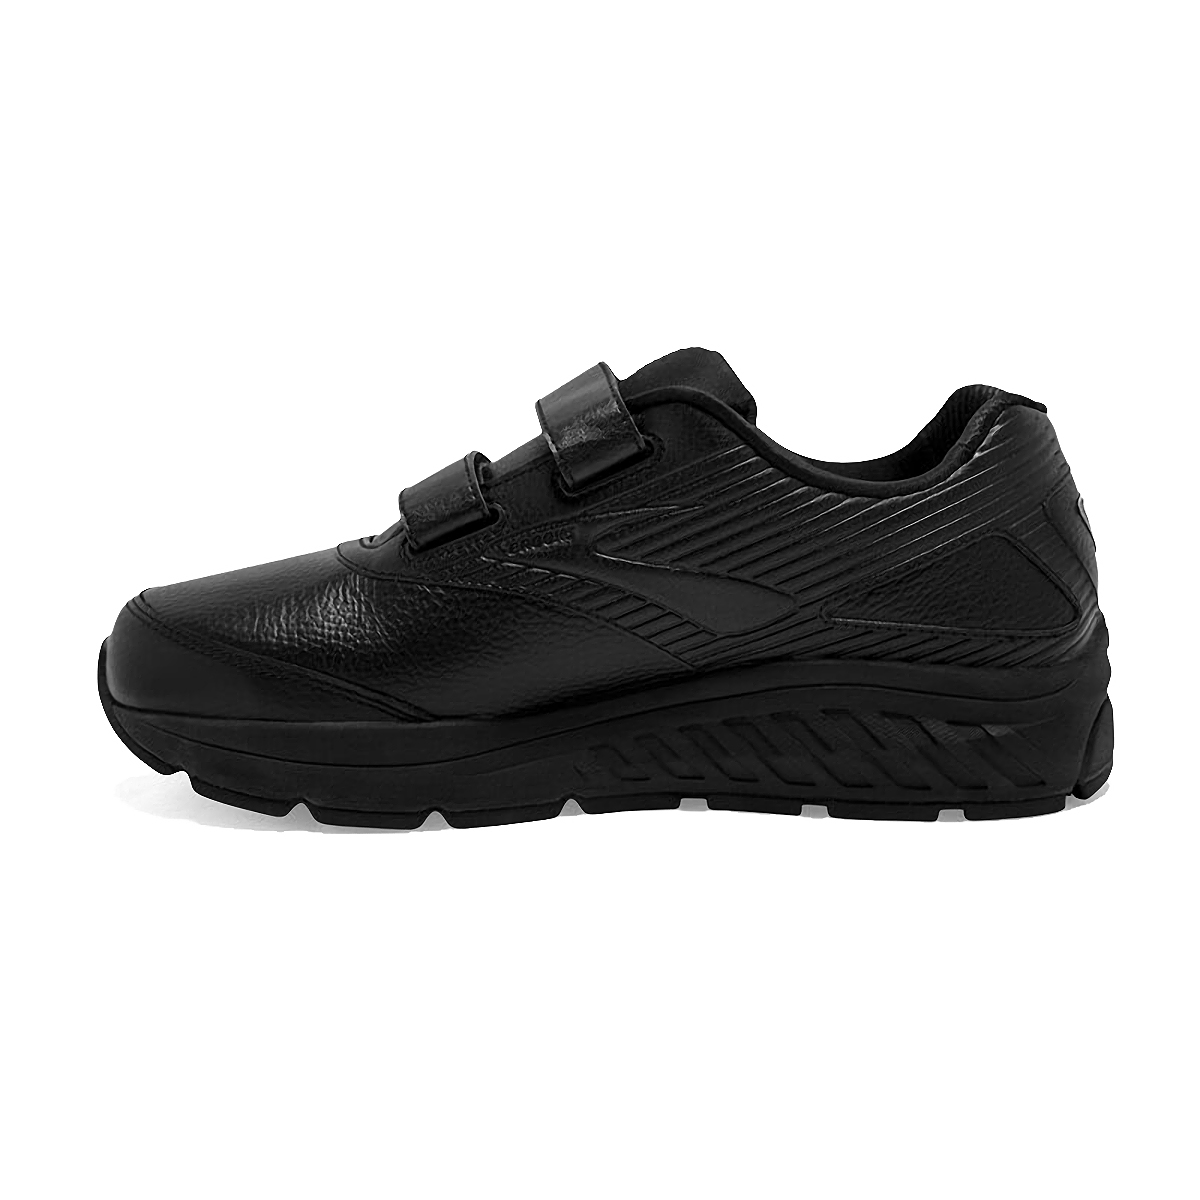 Men's Brooks Addiction Walker V-Strap 2 Walking Shoe - Color: Black/Black - Size: 7 - Width: Regular, Black, large, image 2